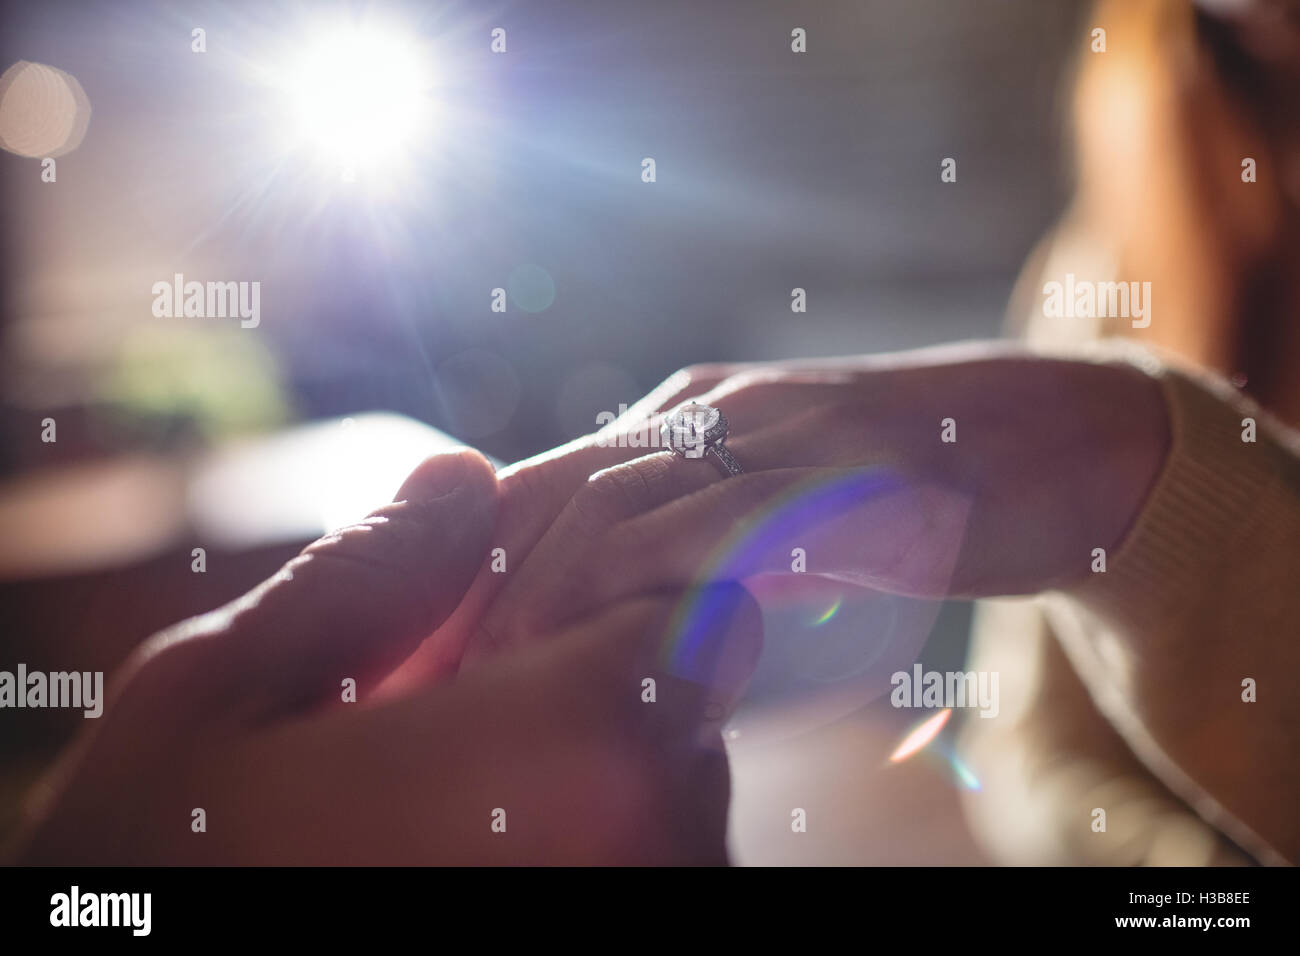 Close-up of couple holding hands with engagement ring at cafe - Stock Image